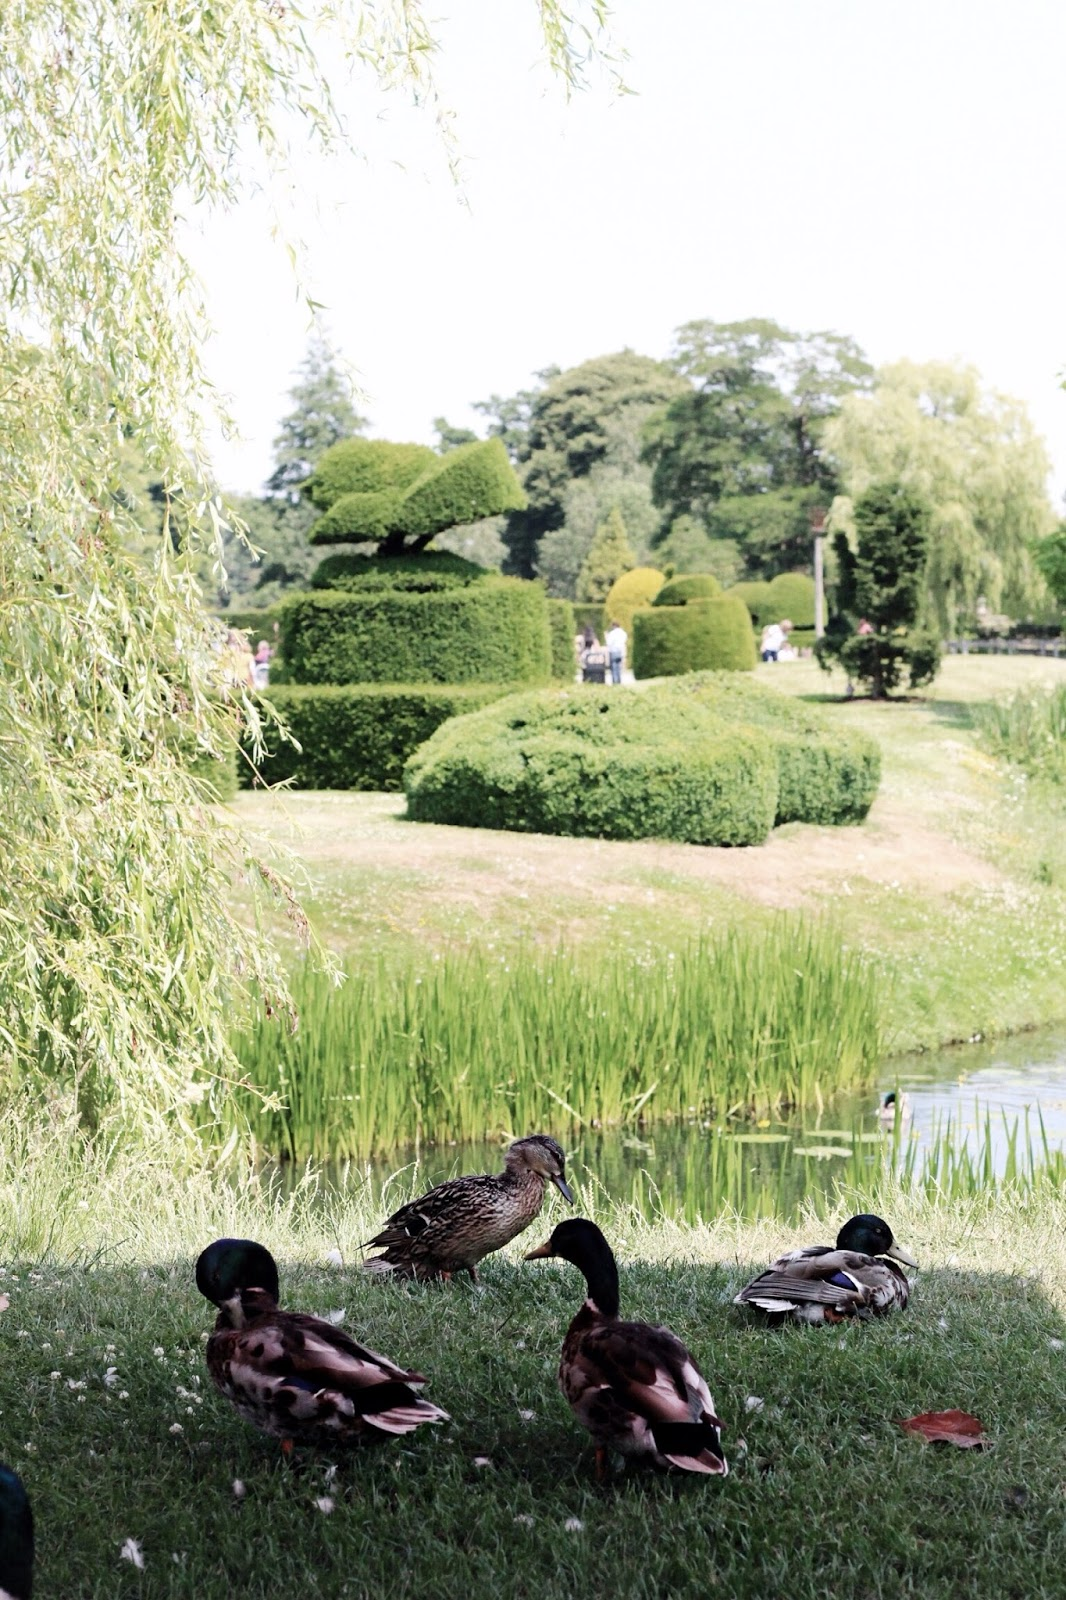 Ducks at Castle by Pond